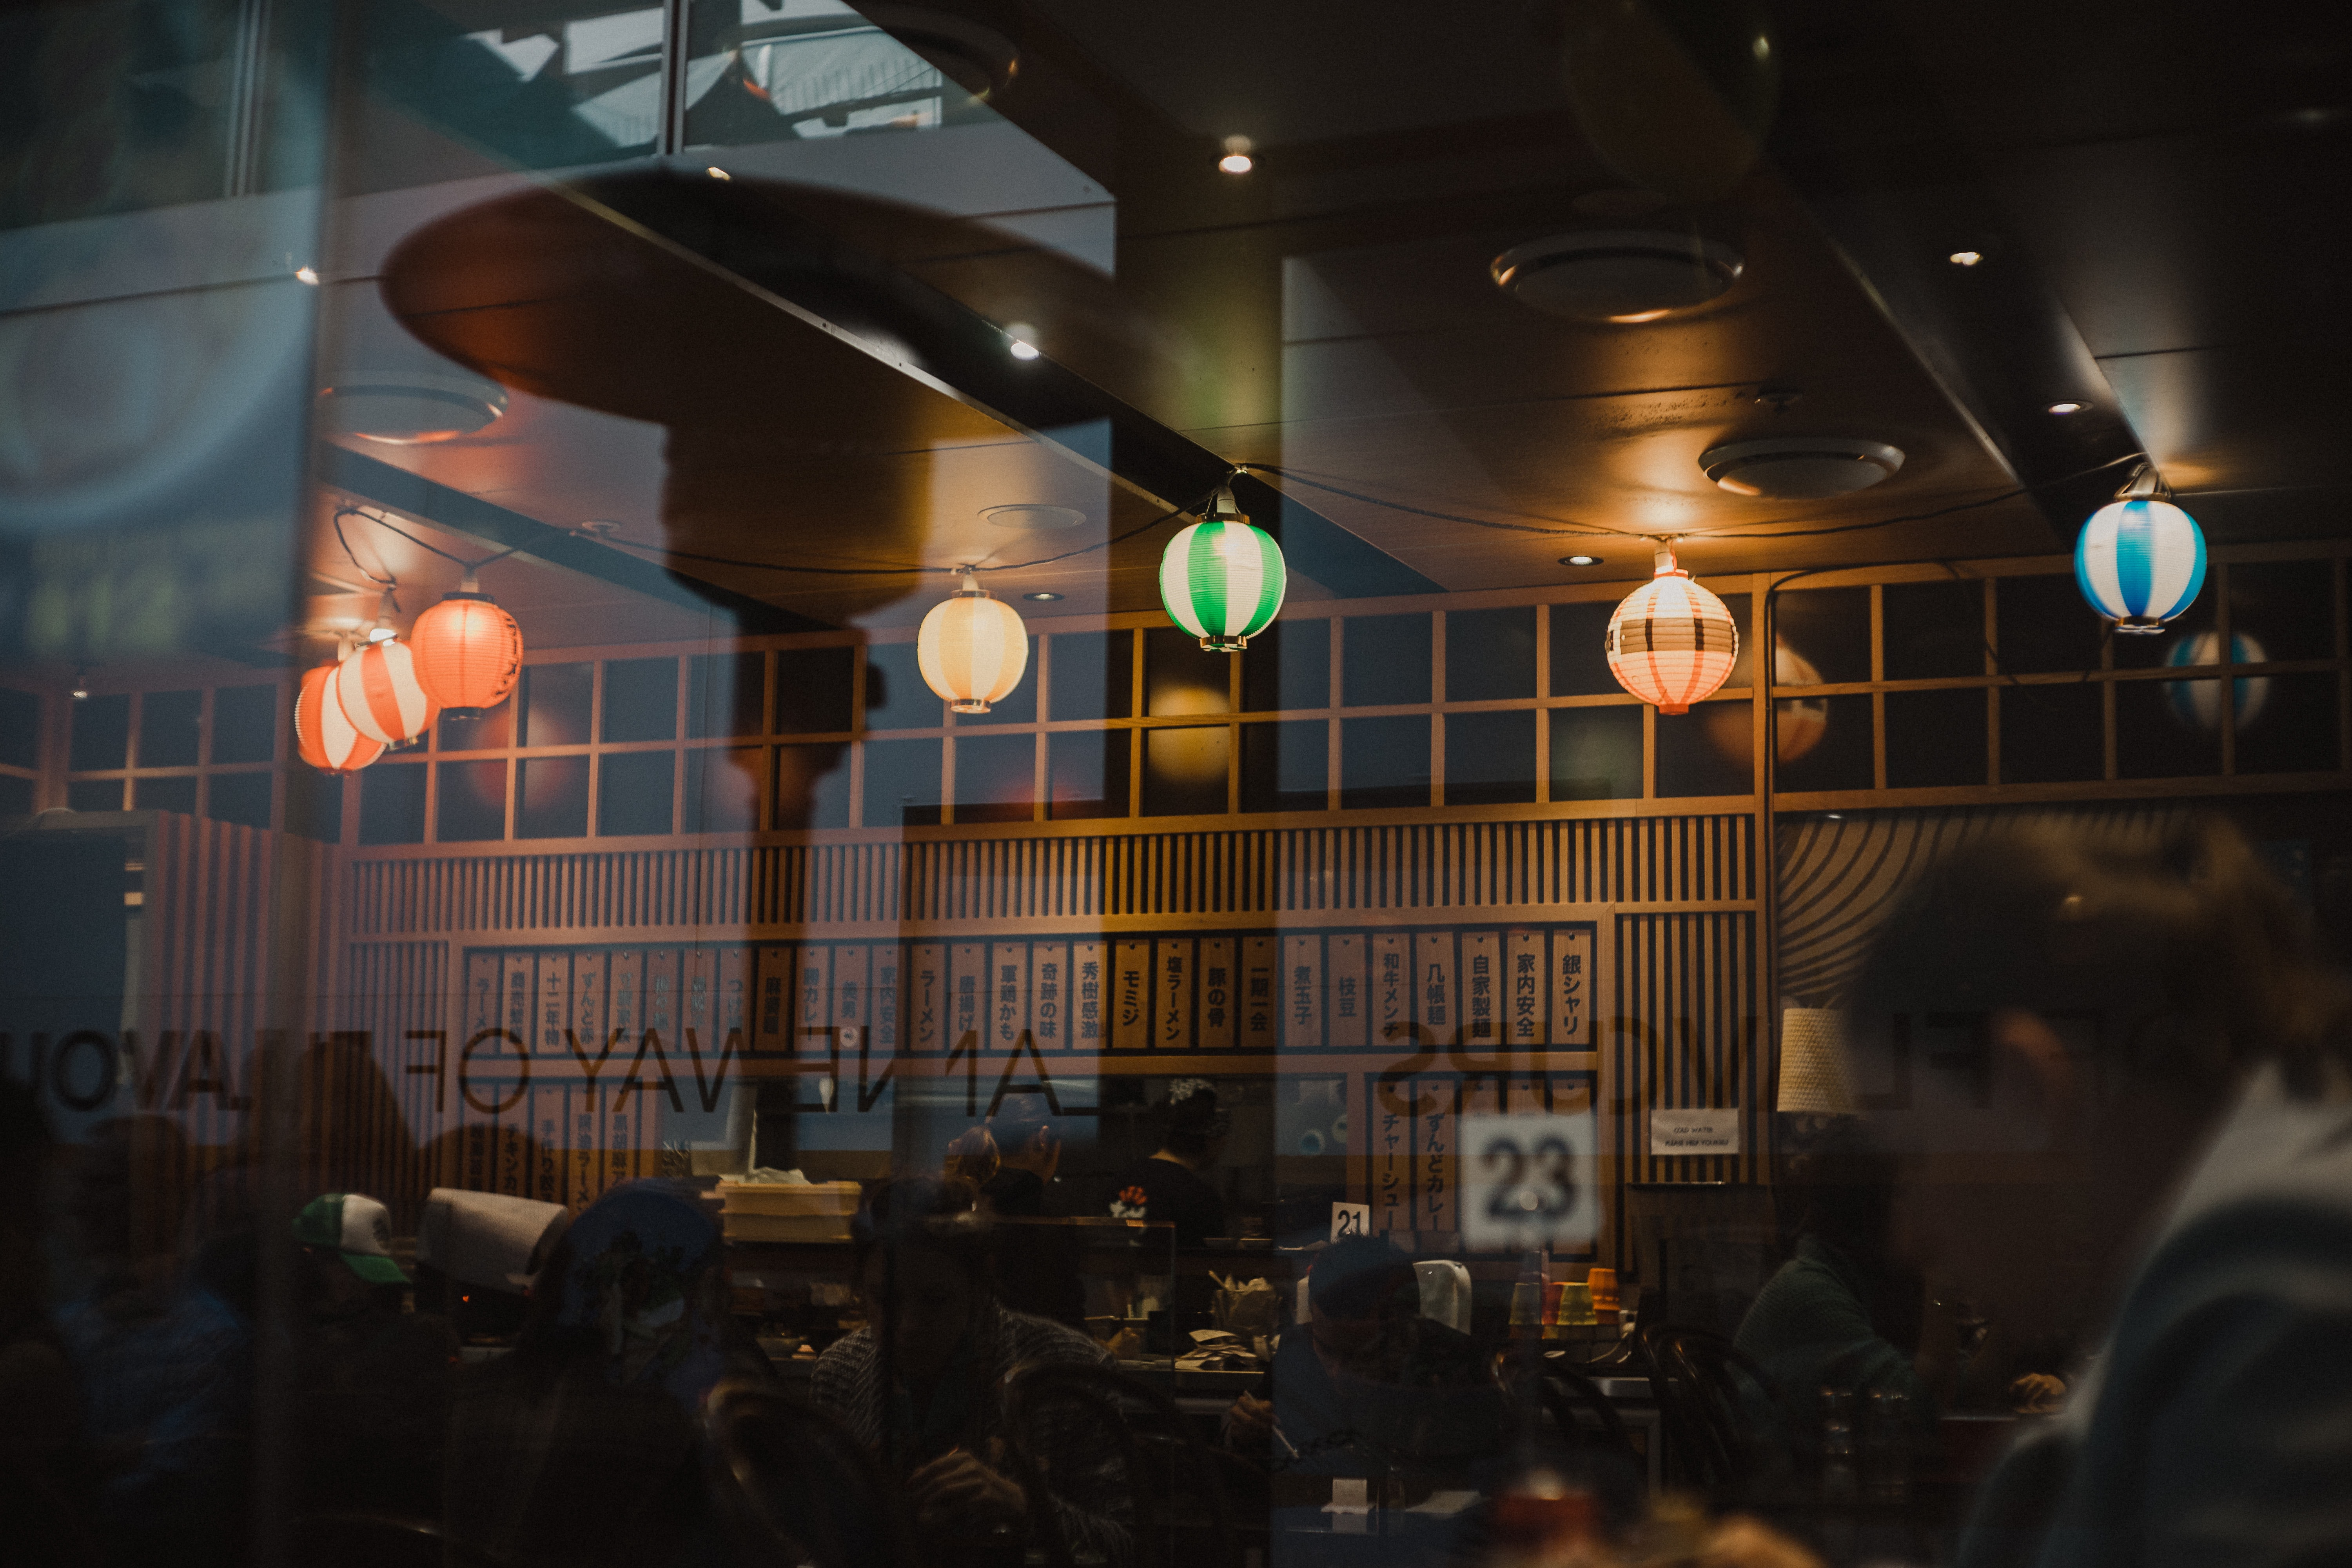 Lamps are reflected in the window of a restaurant with lanterns on the ceiling and wooden panels inside